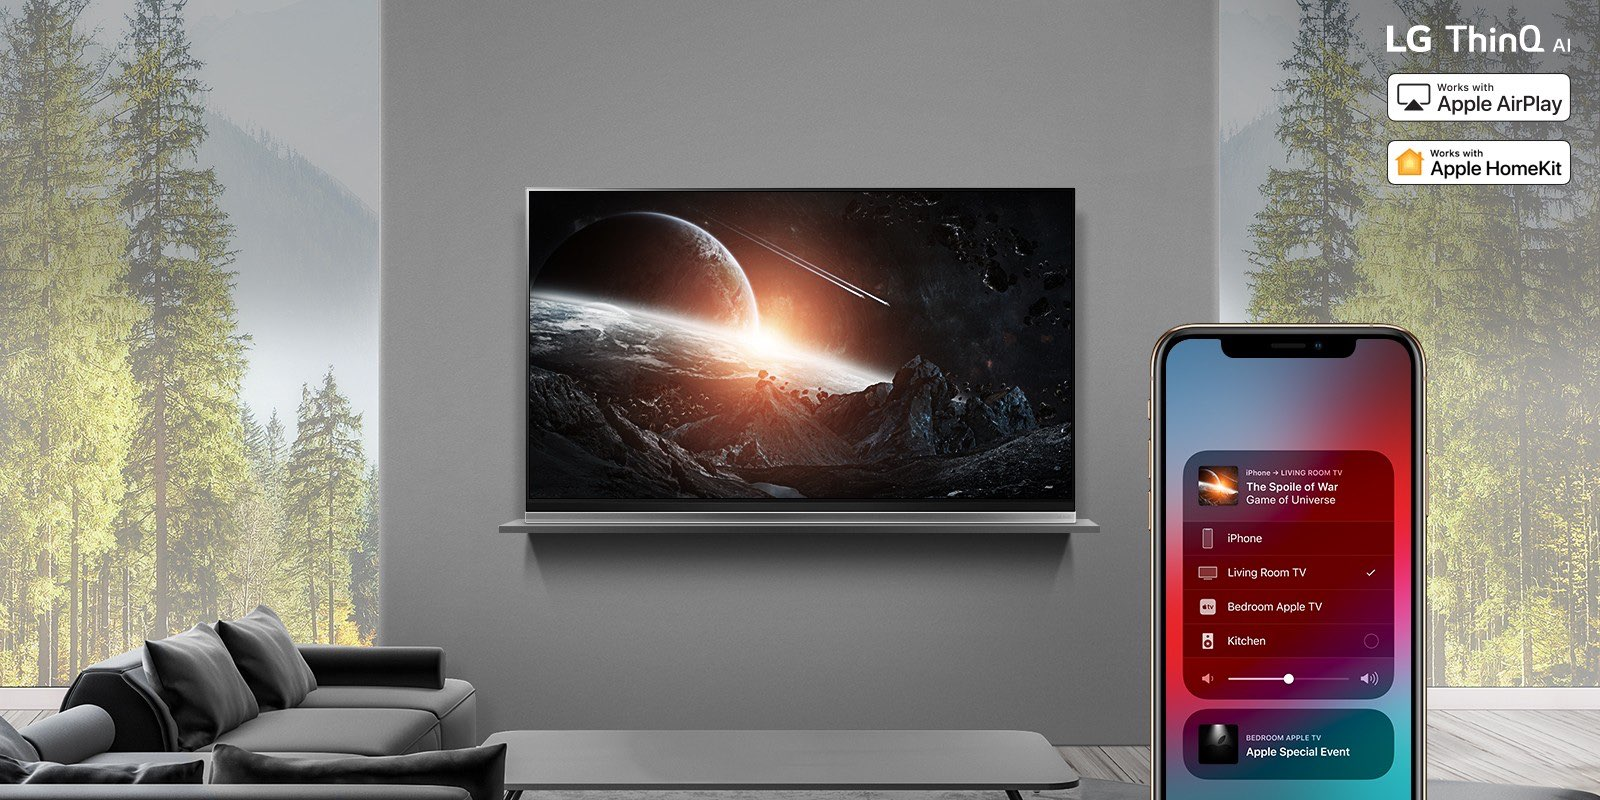 LG cancels plans to add AirPlay2 and HomeKit support to select 2018 TV models